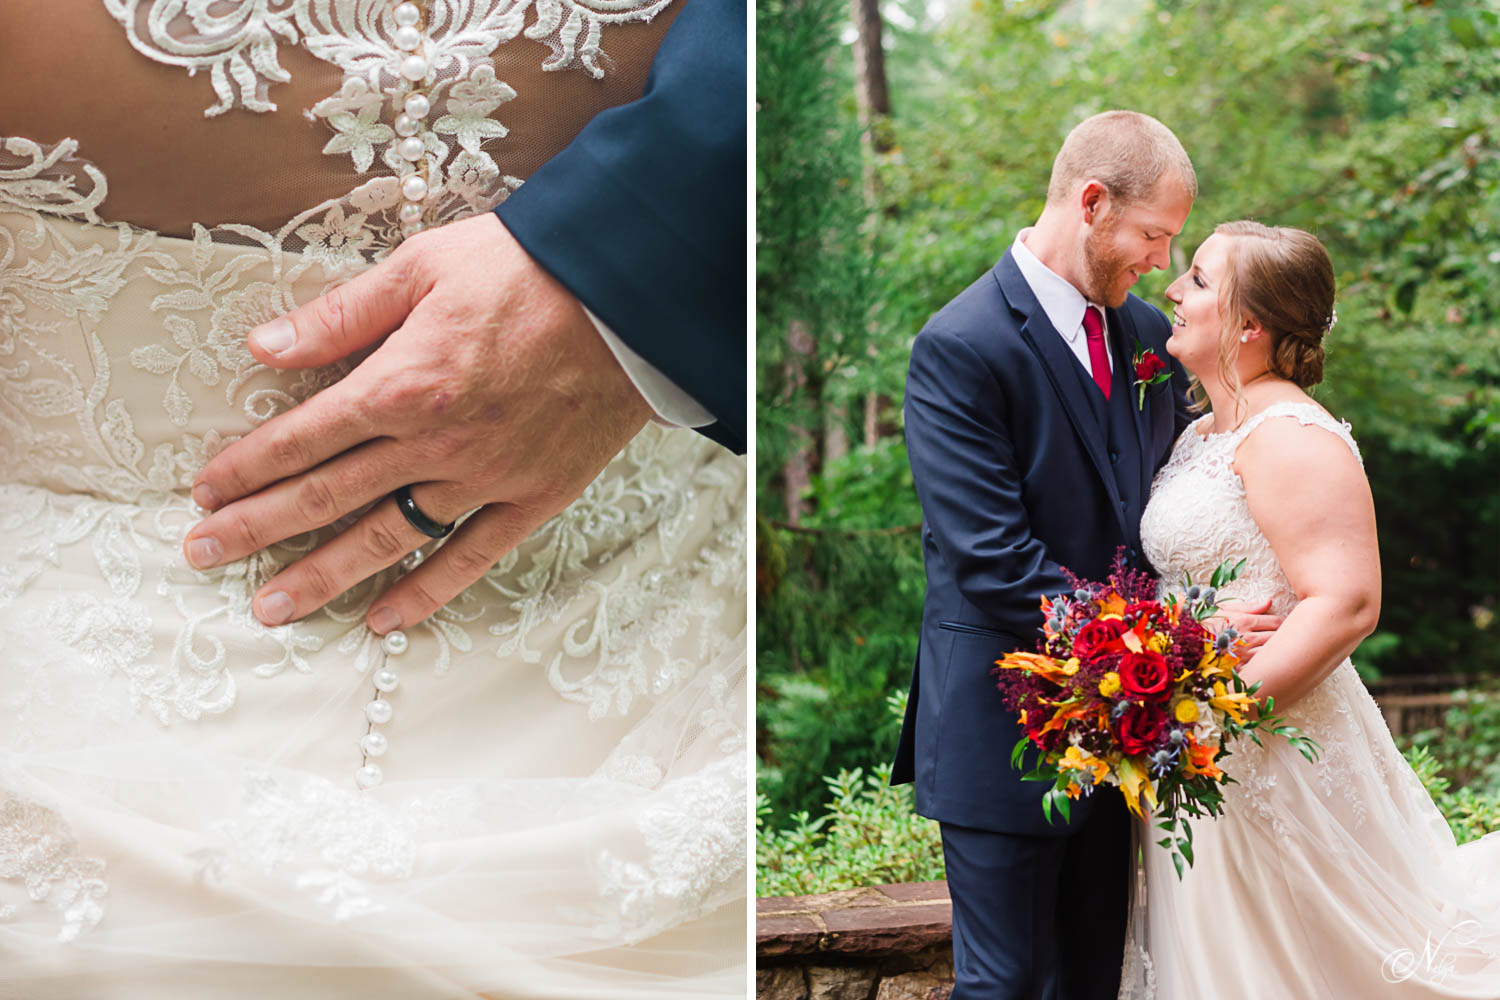 mand's hand with wedding ring on white lace wedding dress. And bride with blod reds in her wedding bouquet.